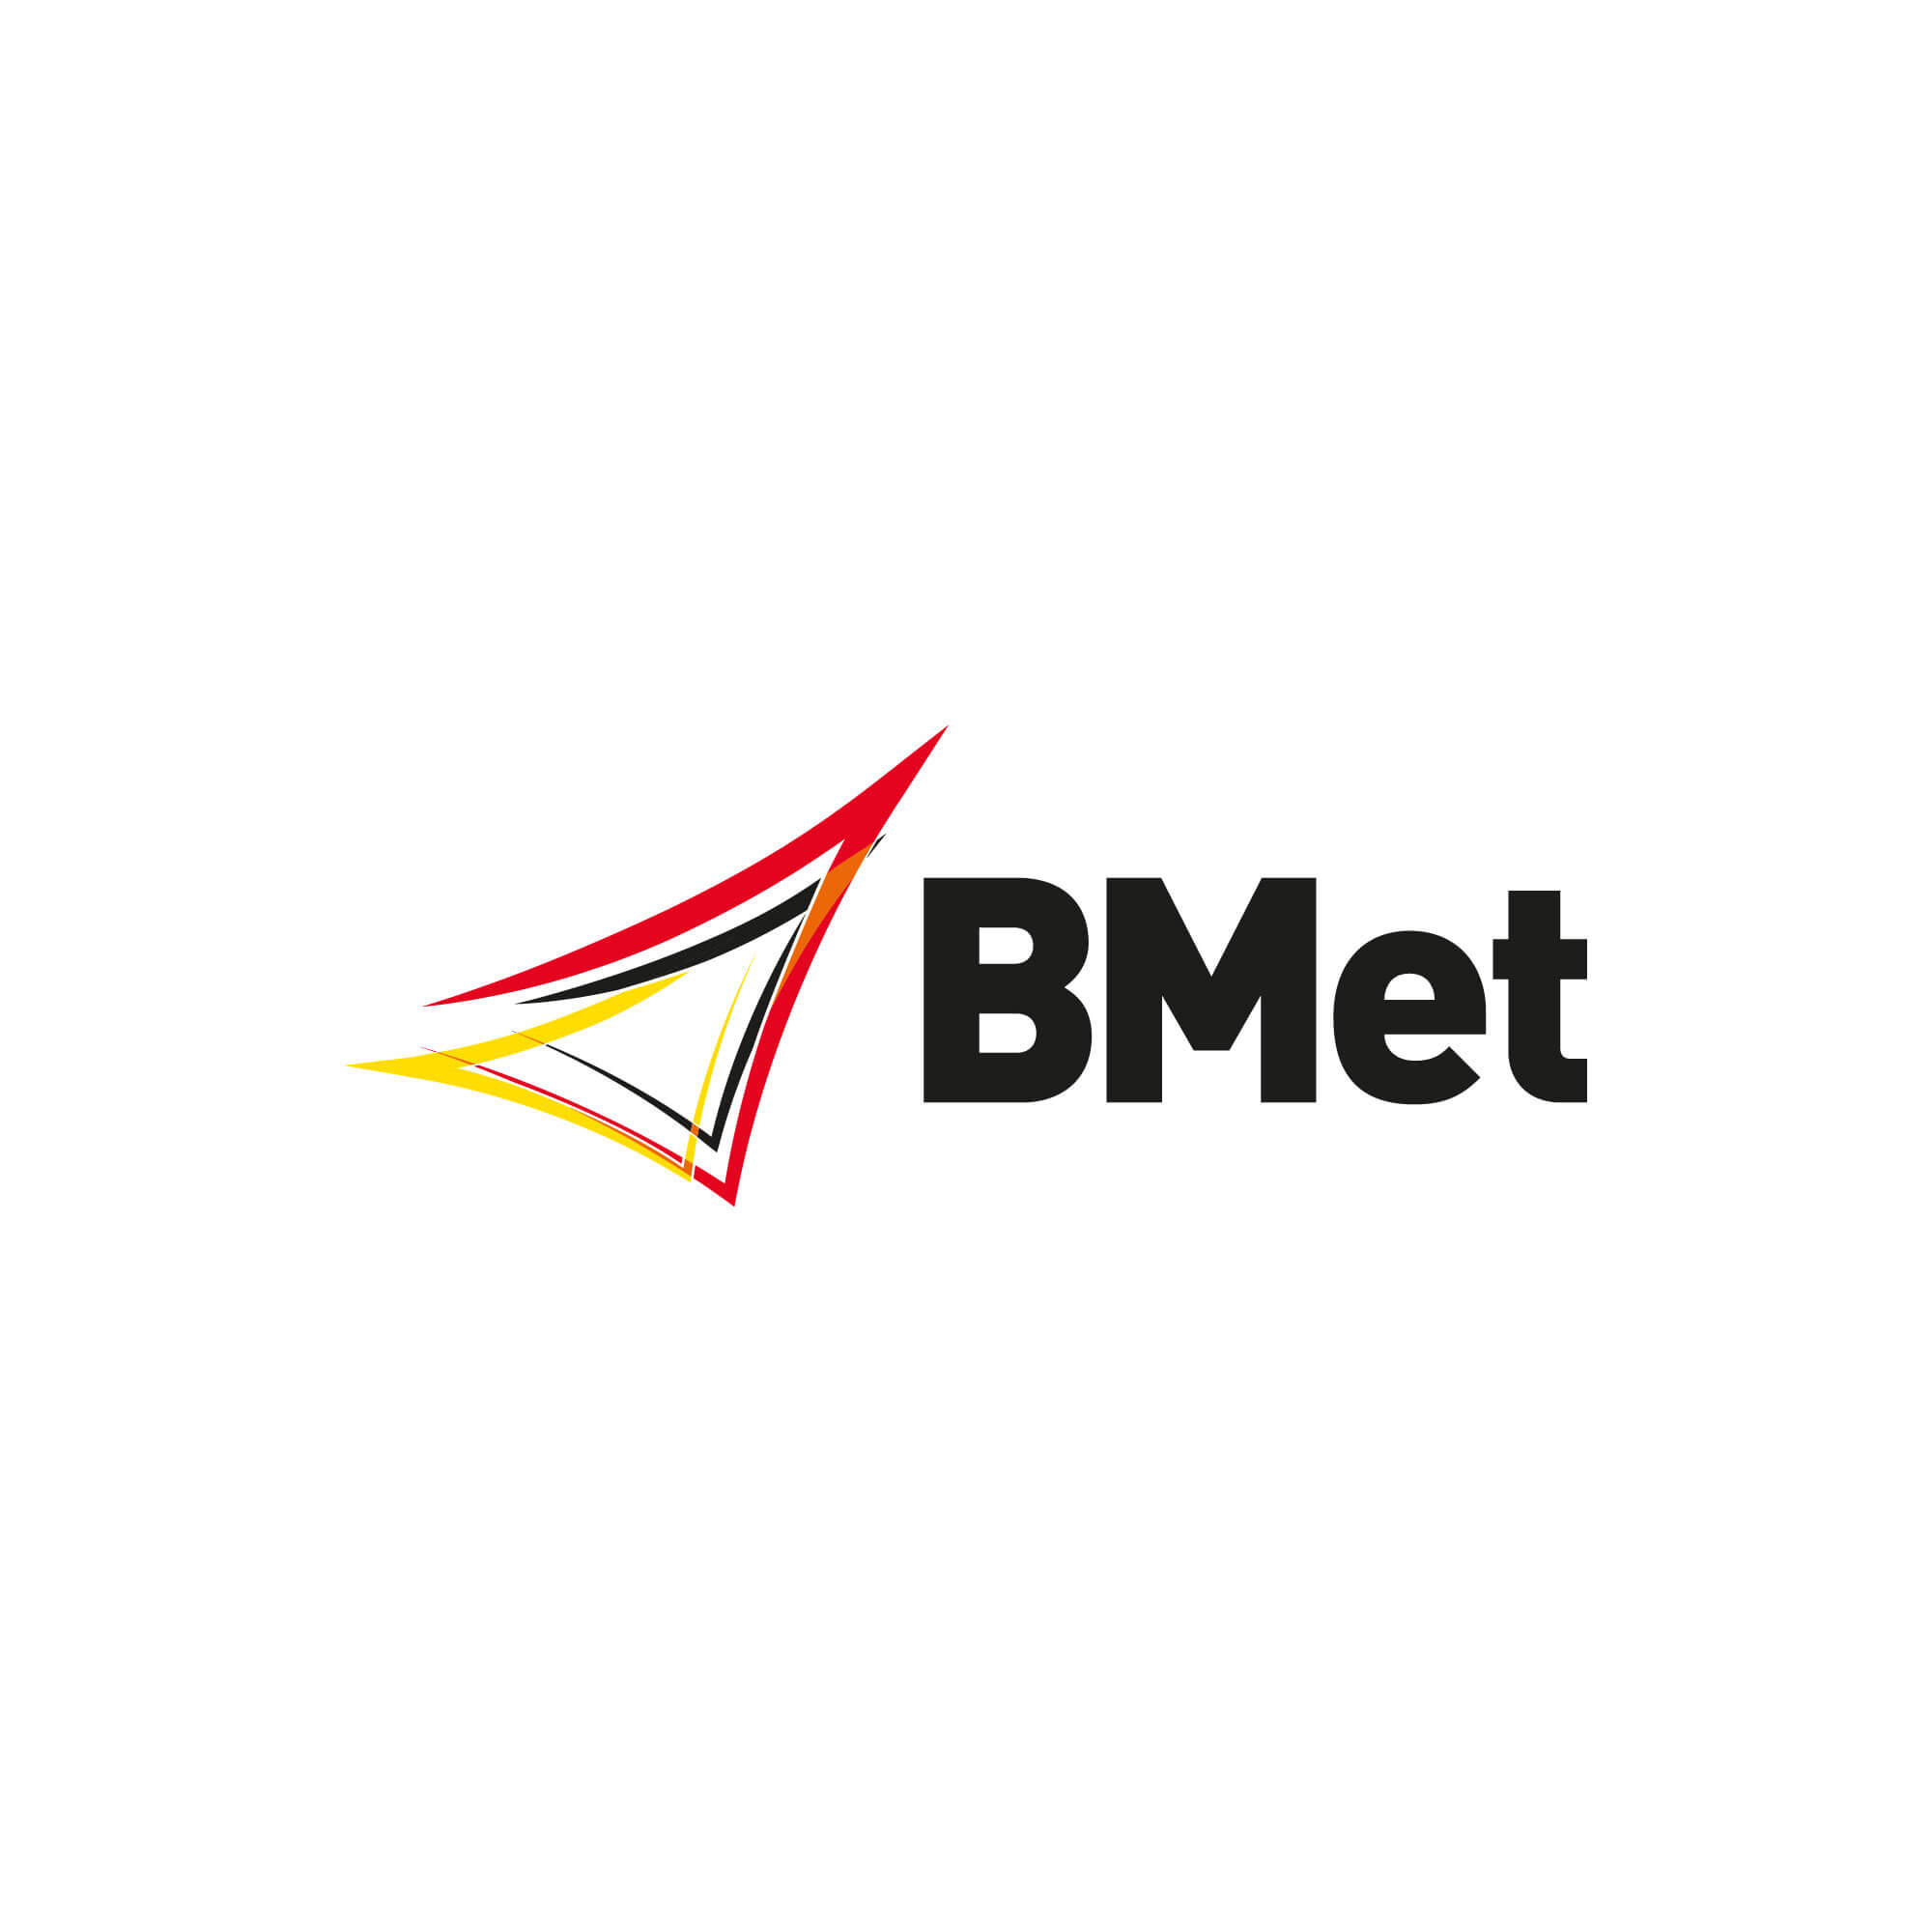 black and red logo spelling the letters BMet